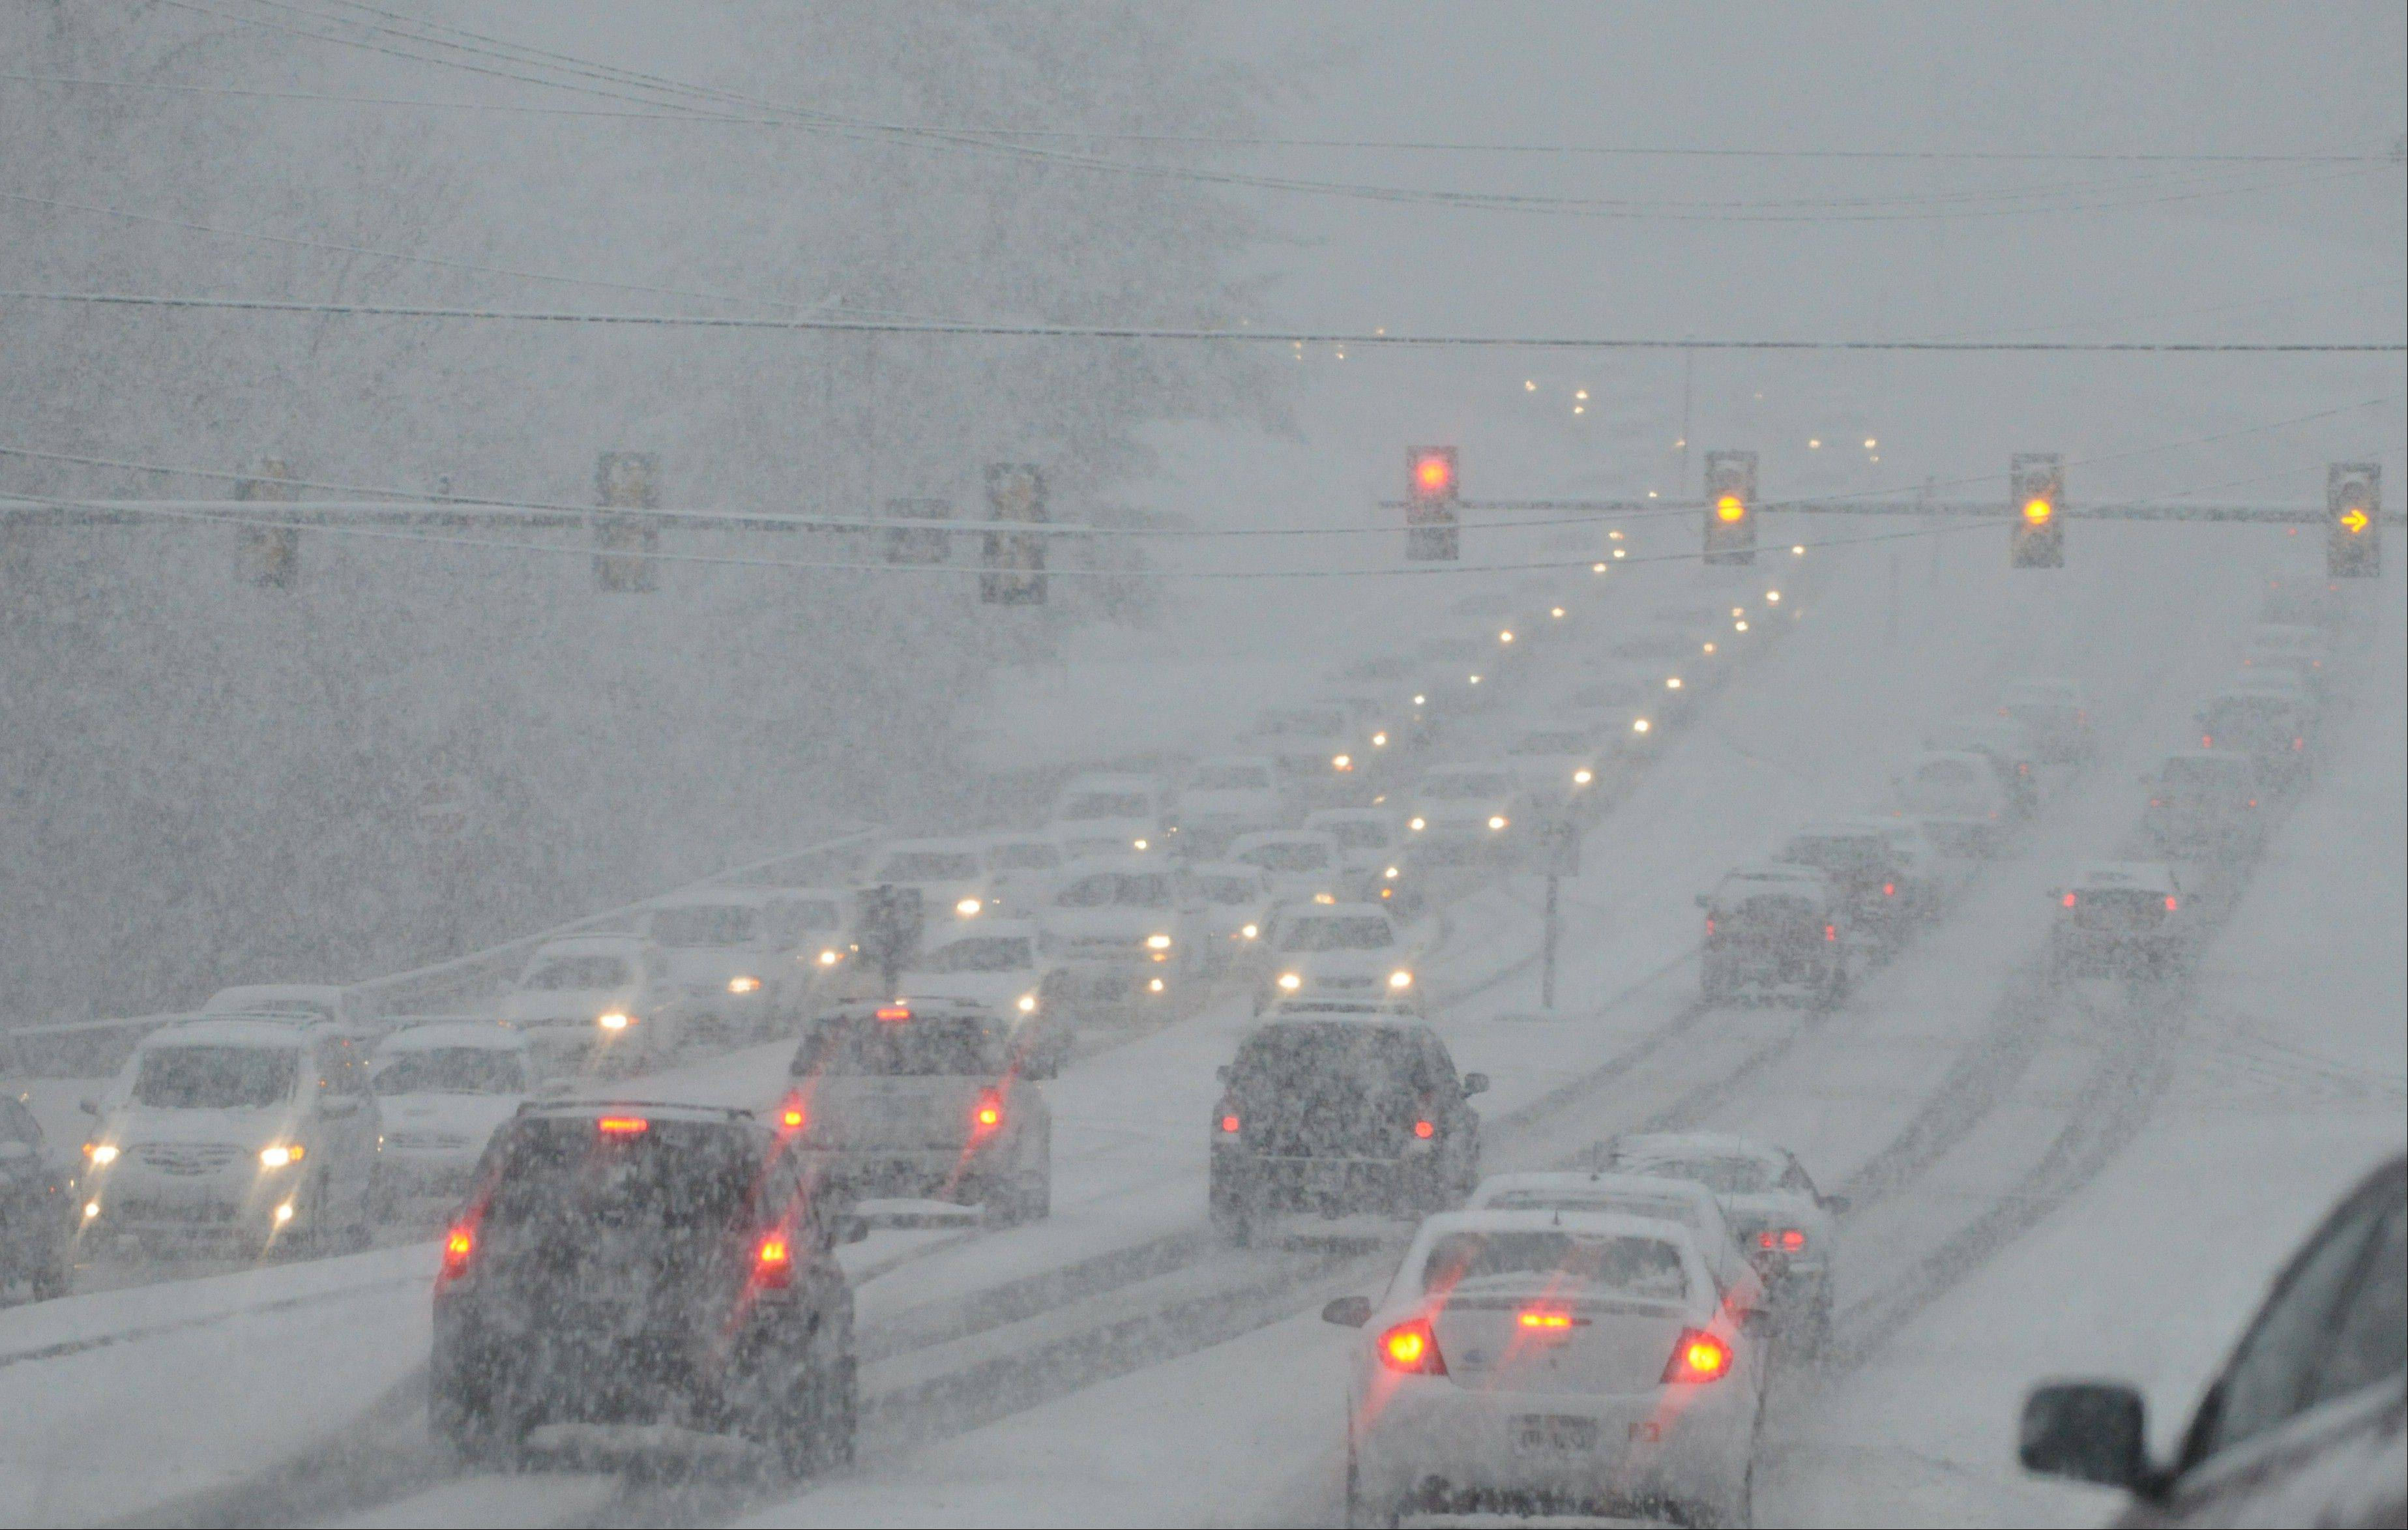 Commuters on 419 drive through heavy snowfall and low visibility on Thursday, Jan. 17, 2013 in Roanoke County, Va. Icy roads remain a concern Friday morning and some school systems decided to open late.